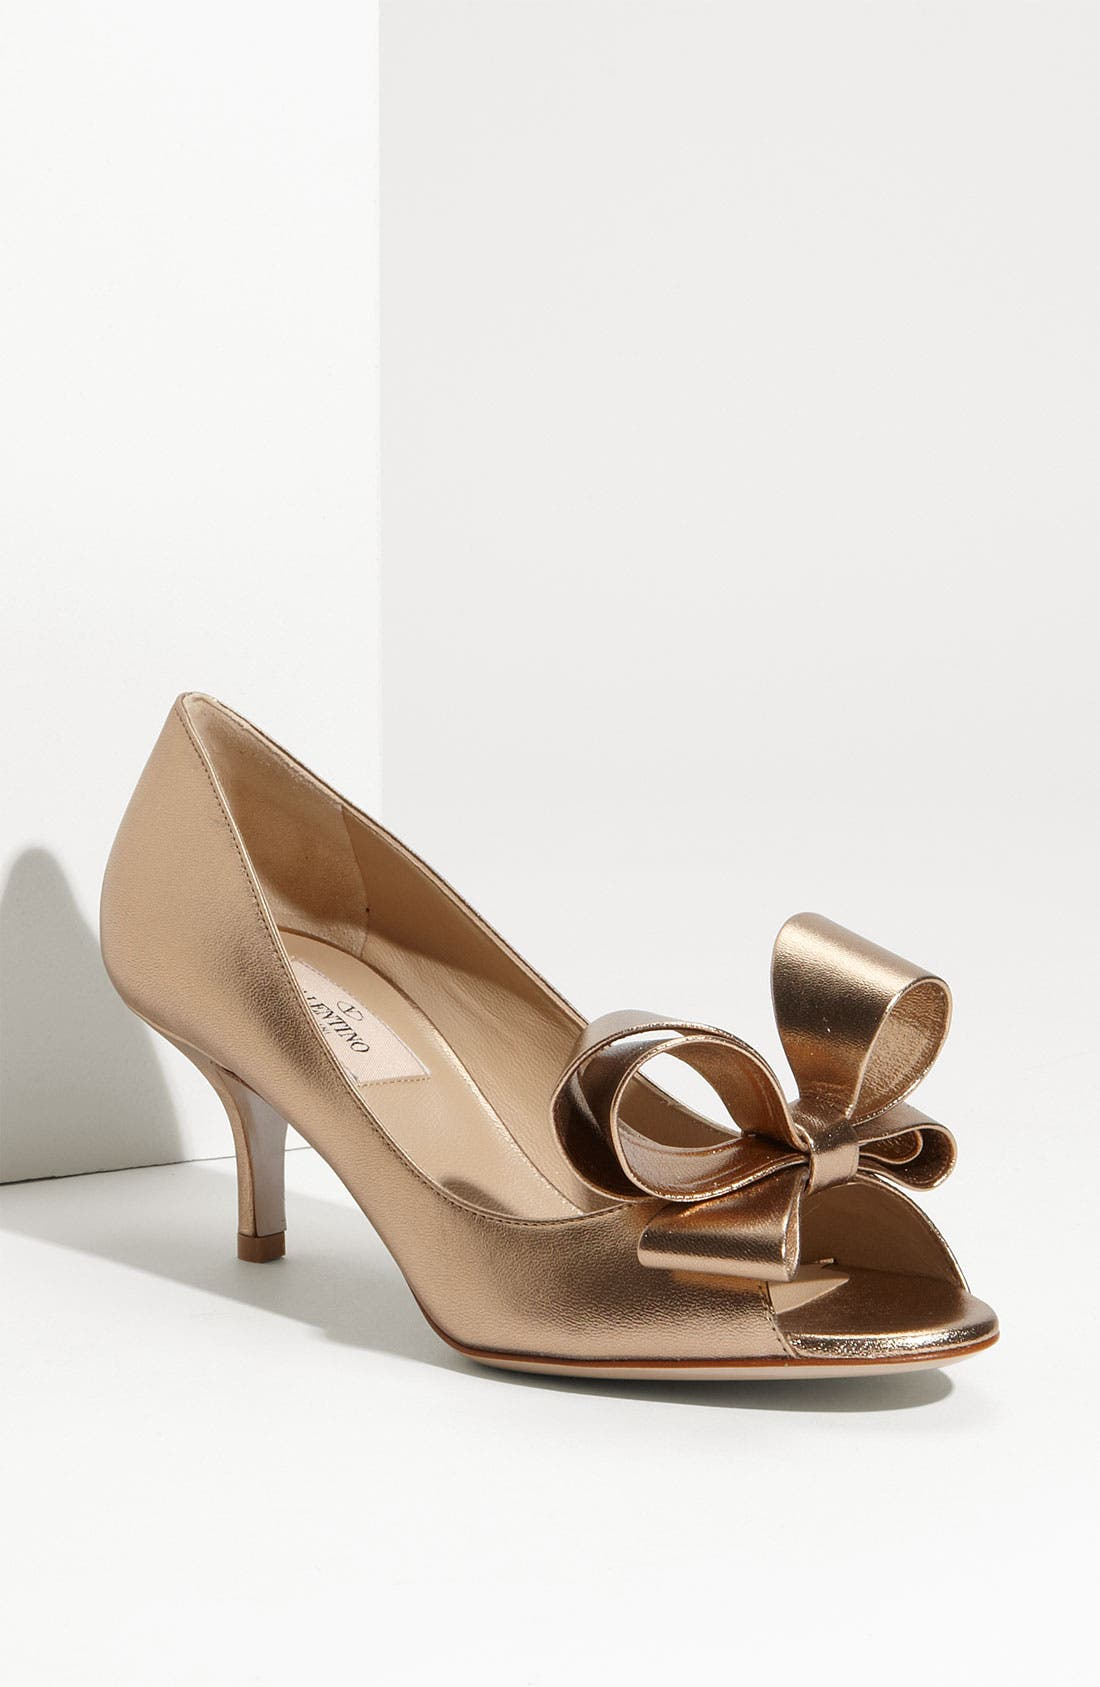 Alternate Image 1 Selected - Valentino Metallic Nappa Couture Bow Pump